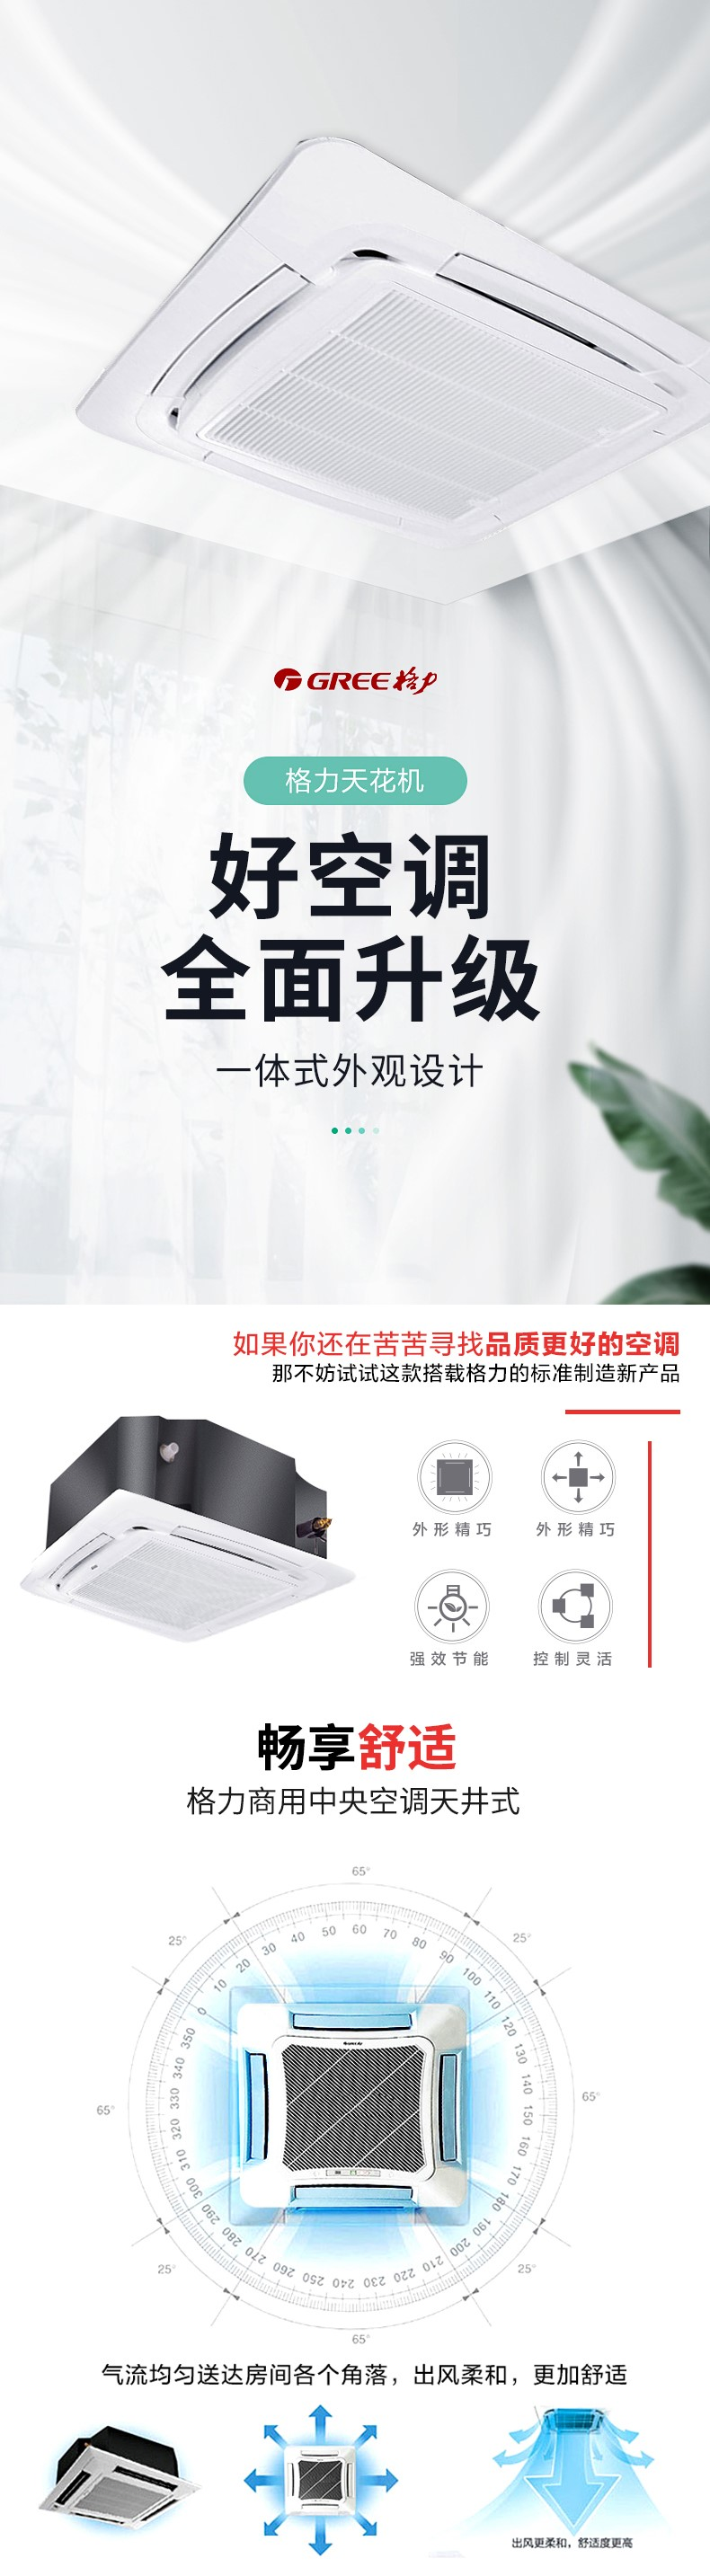 /image/catalog/collector/jingdong/2020/09/23100009745038-042f7be67254ccc6d1c355976c4ff378.jpg